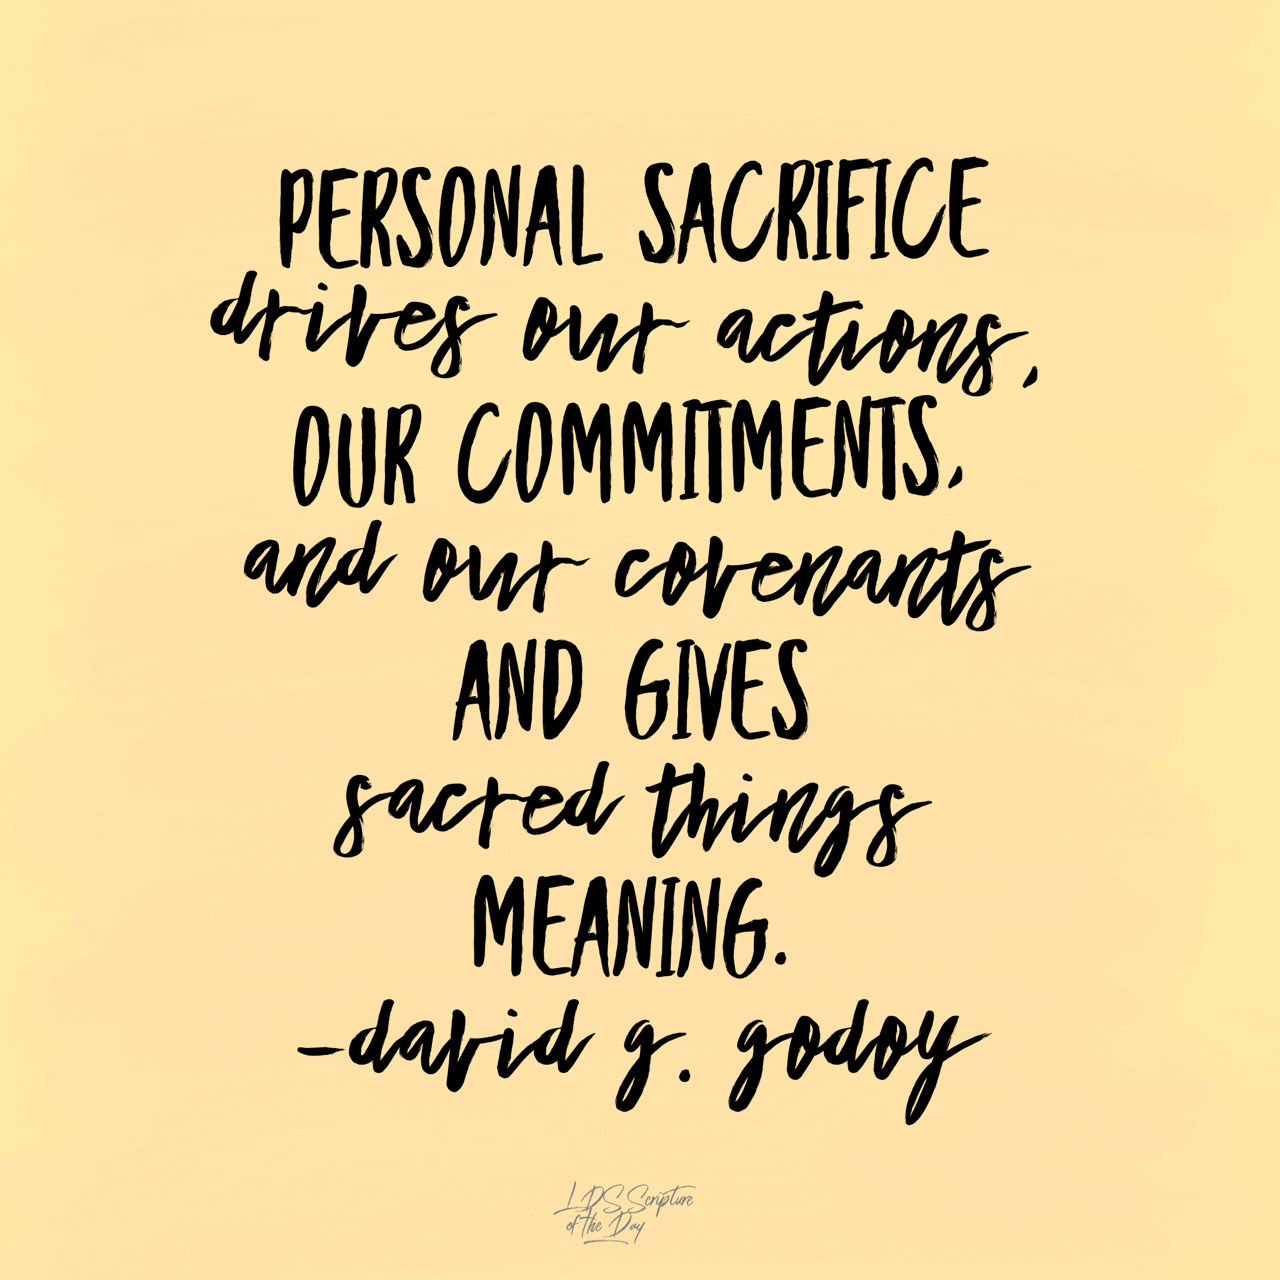 Personal sacrifice drives our actions - LDS Scripture of ... | 1280 x 1280 png 331kB